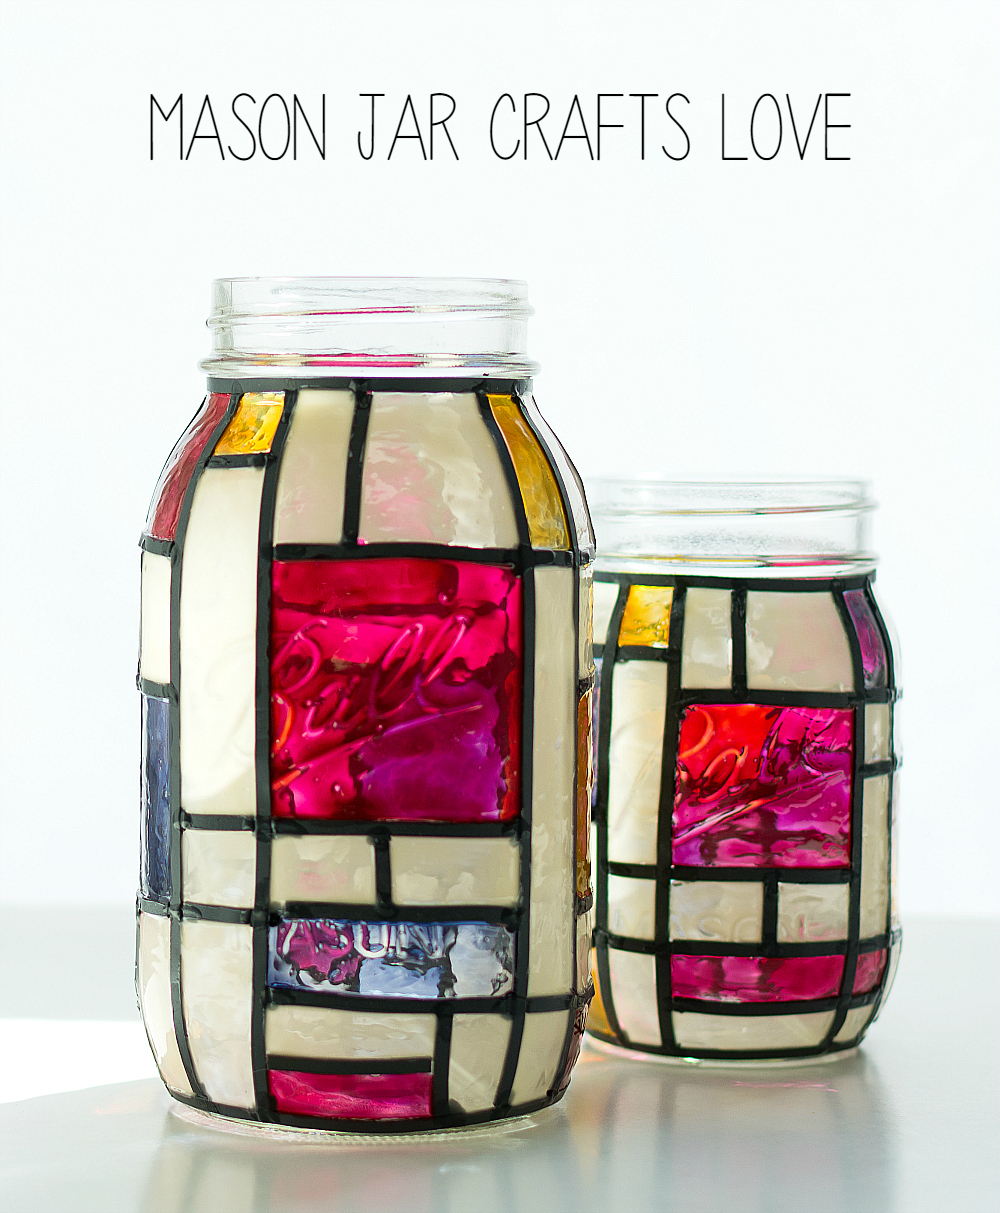 Mason Jar Crafts: Mondrian Look Mason Jar Tutorial